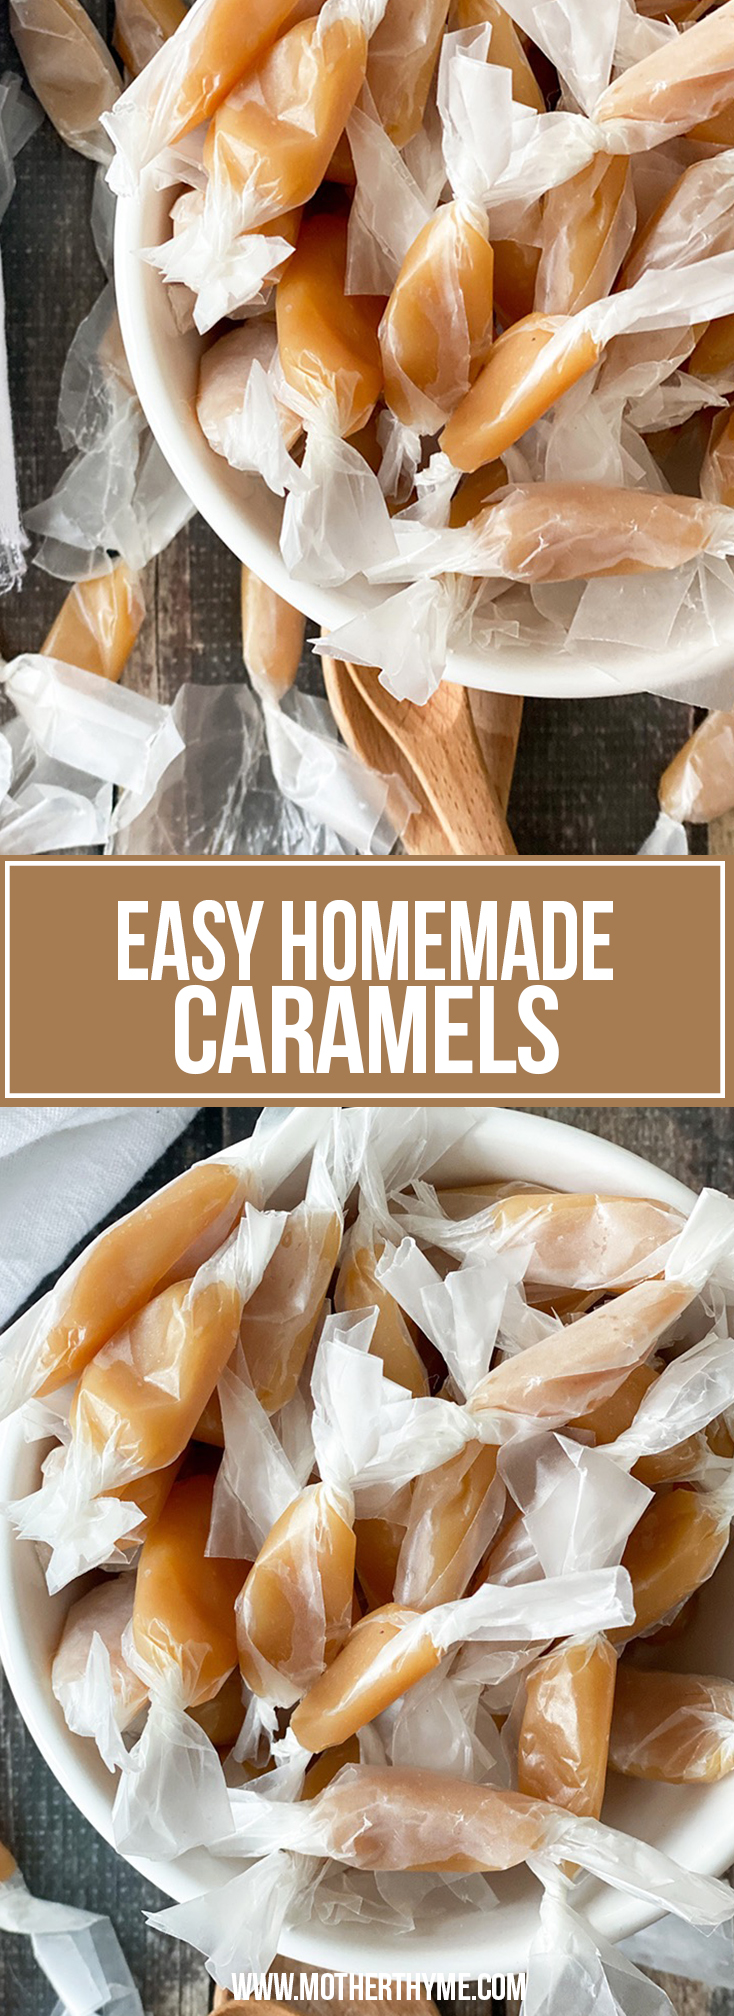 EASY HOMEMADE CARAMELS